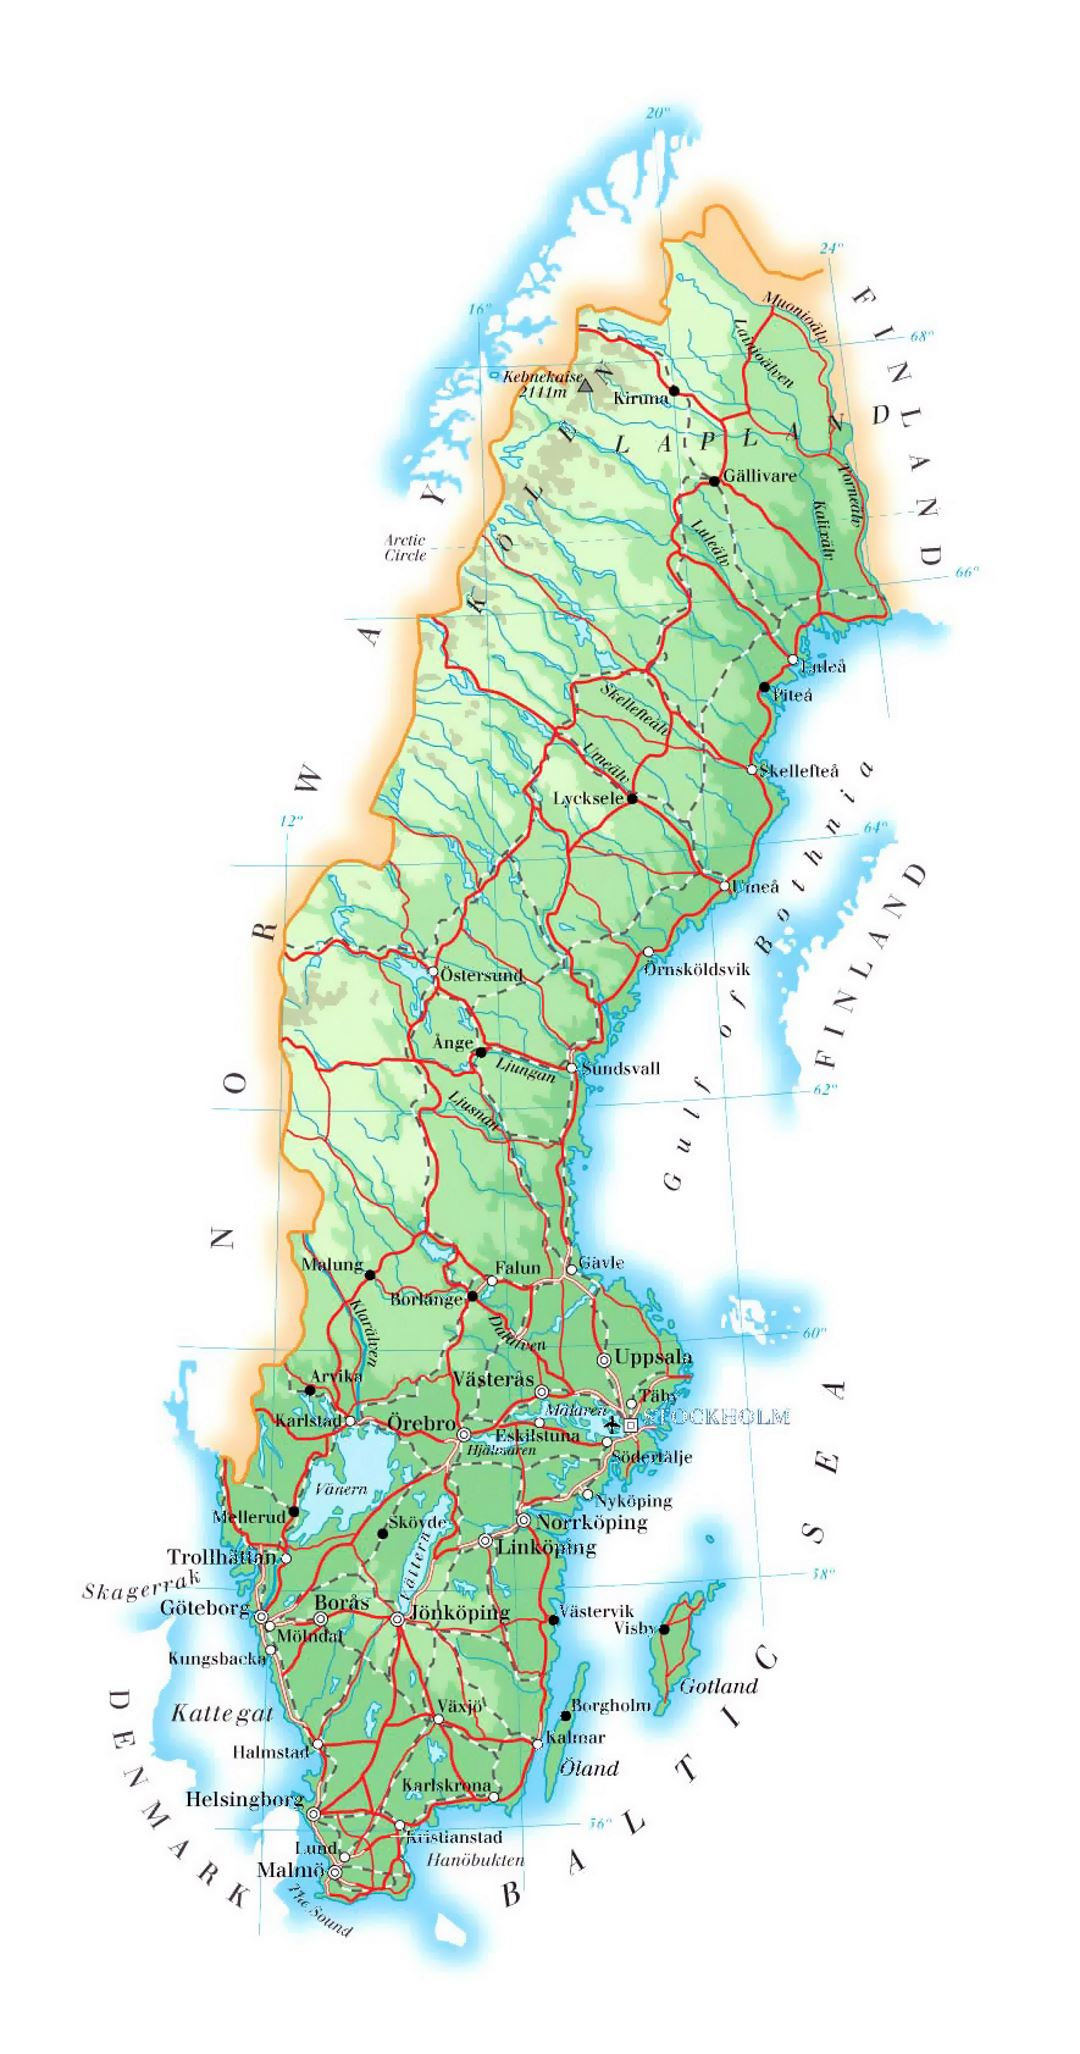 Detailed Elevation Map Of Sweden With Roads Cities And Airports - Map of sweden